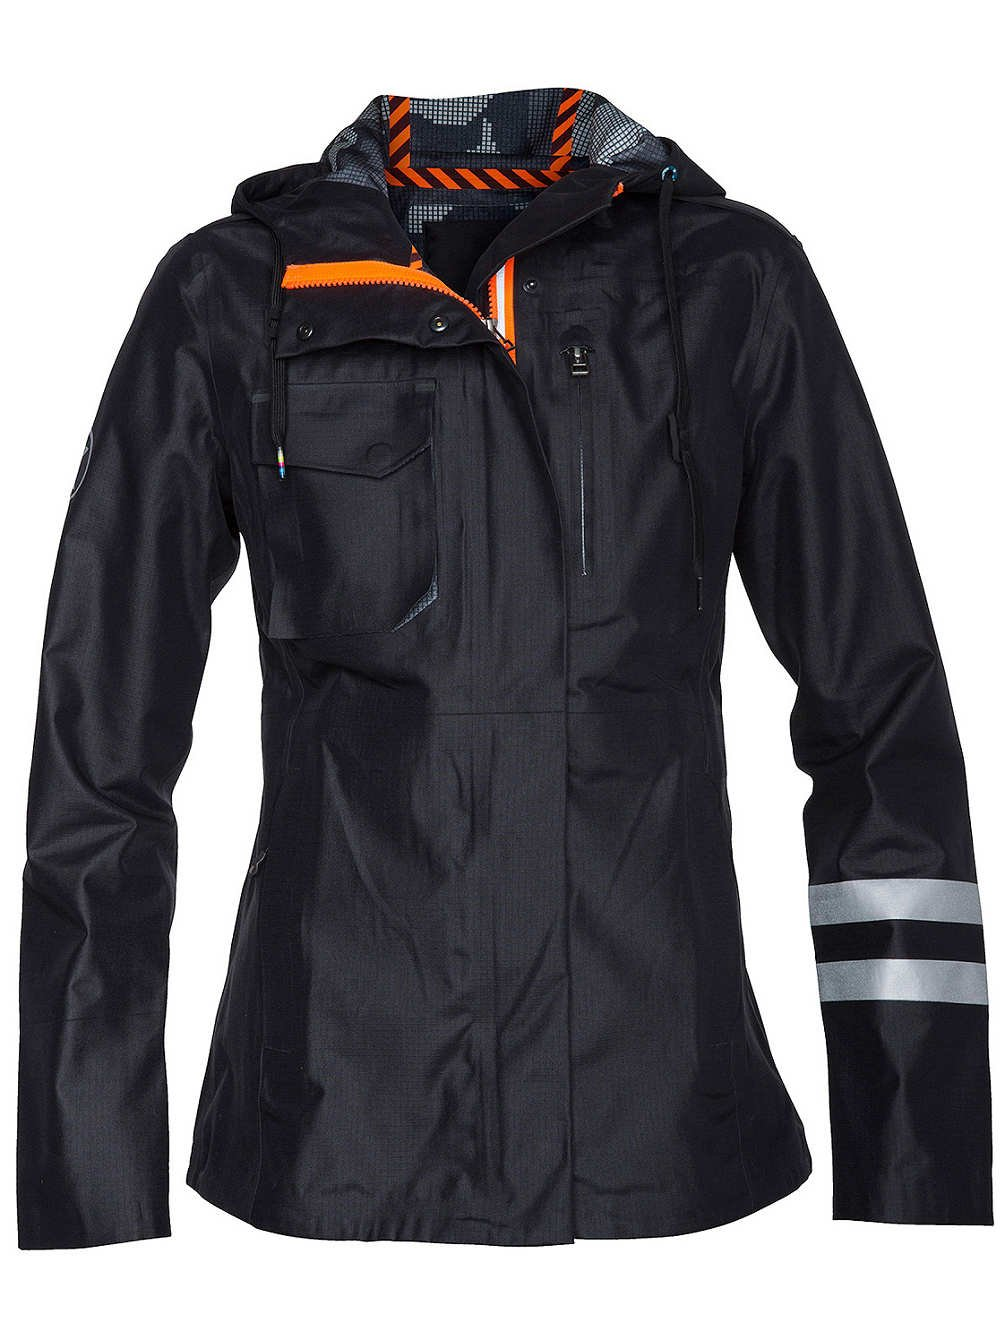 Damen Snowboard Jacke Hurley Phantom Protect Slicker Jacket